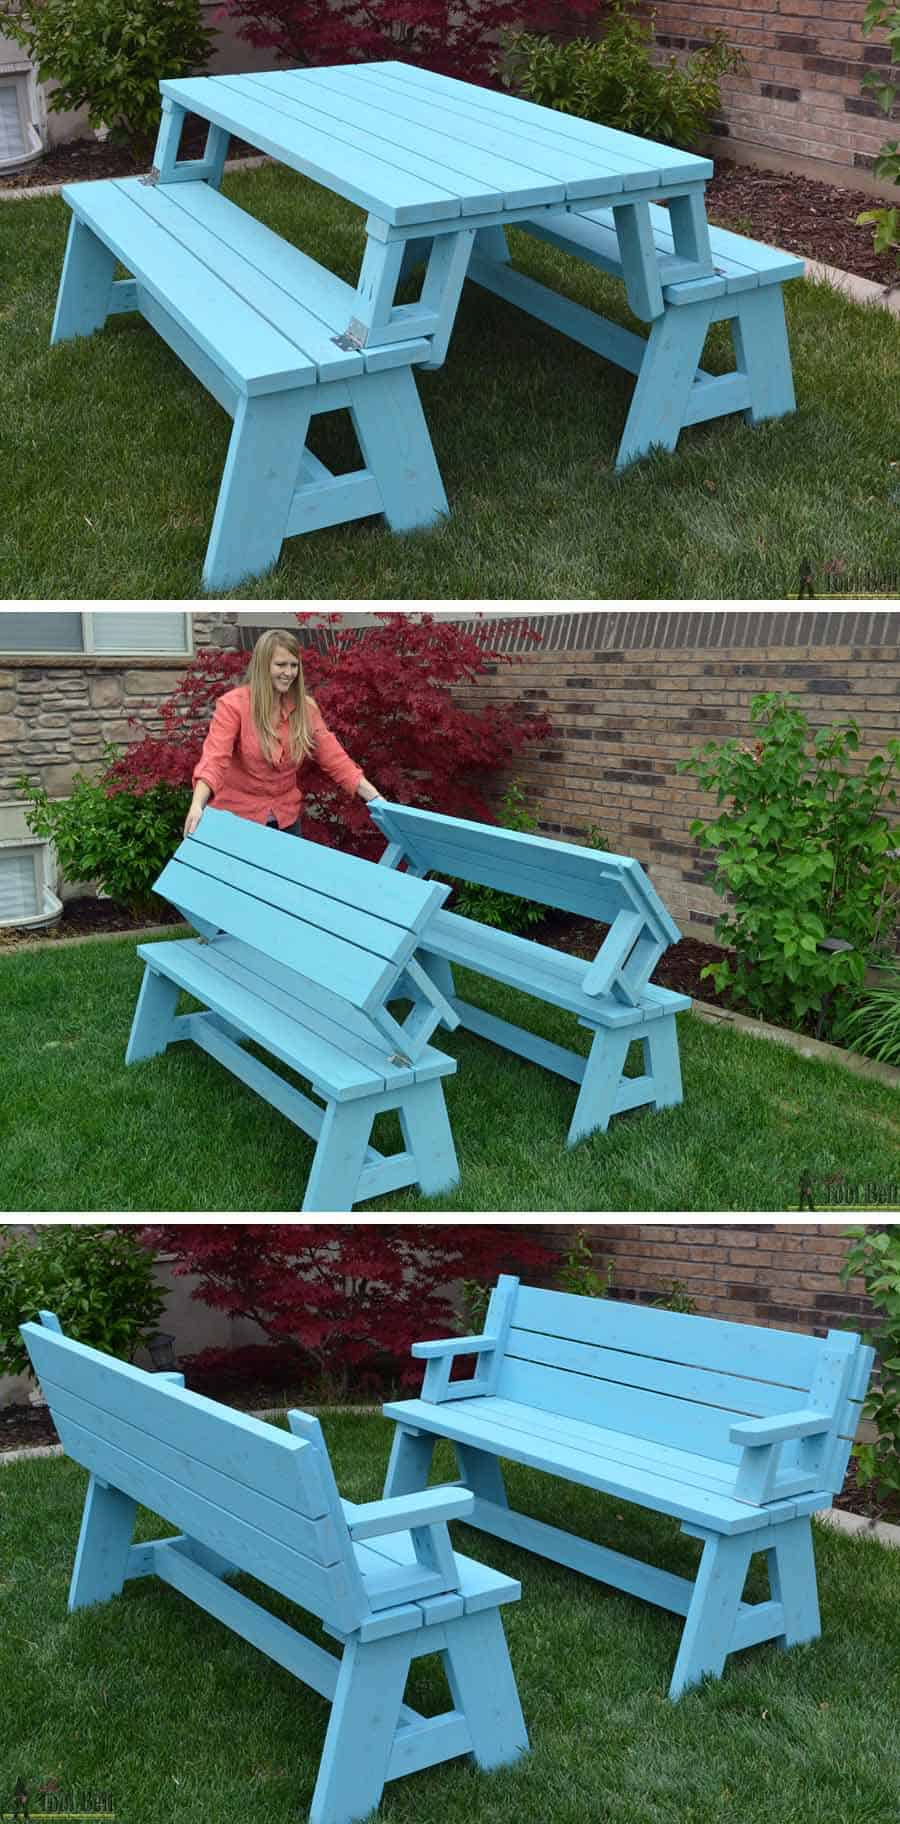 Folding table to benches